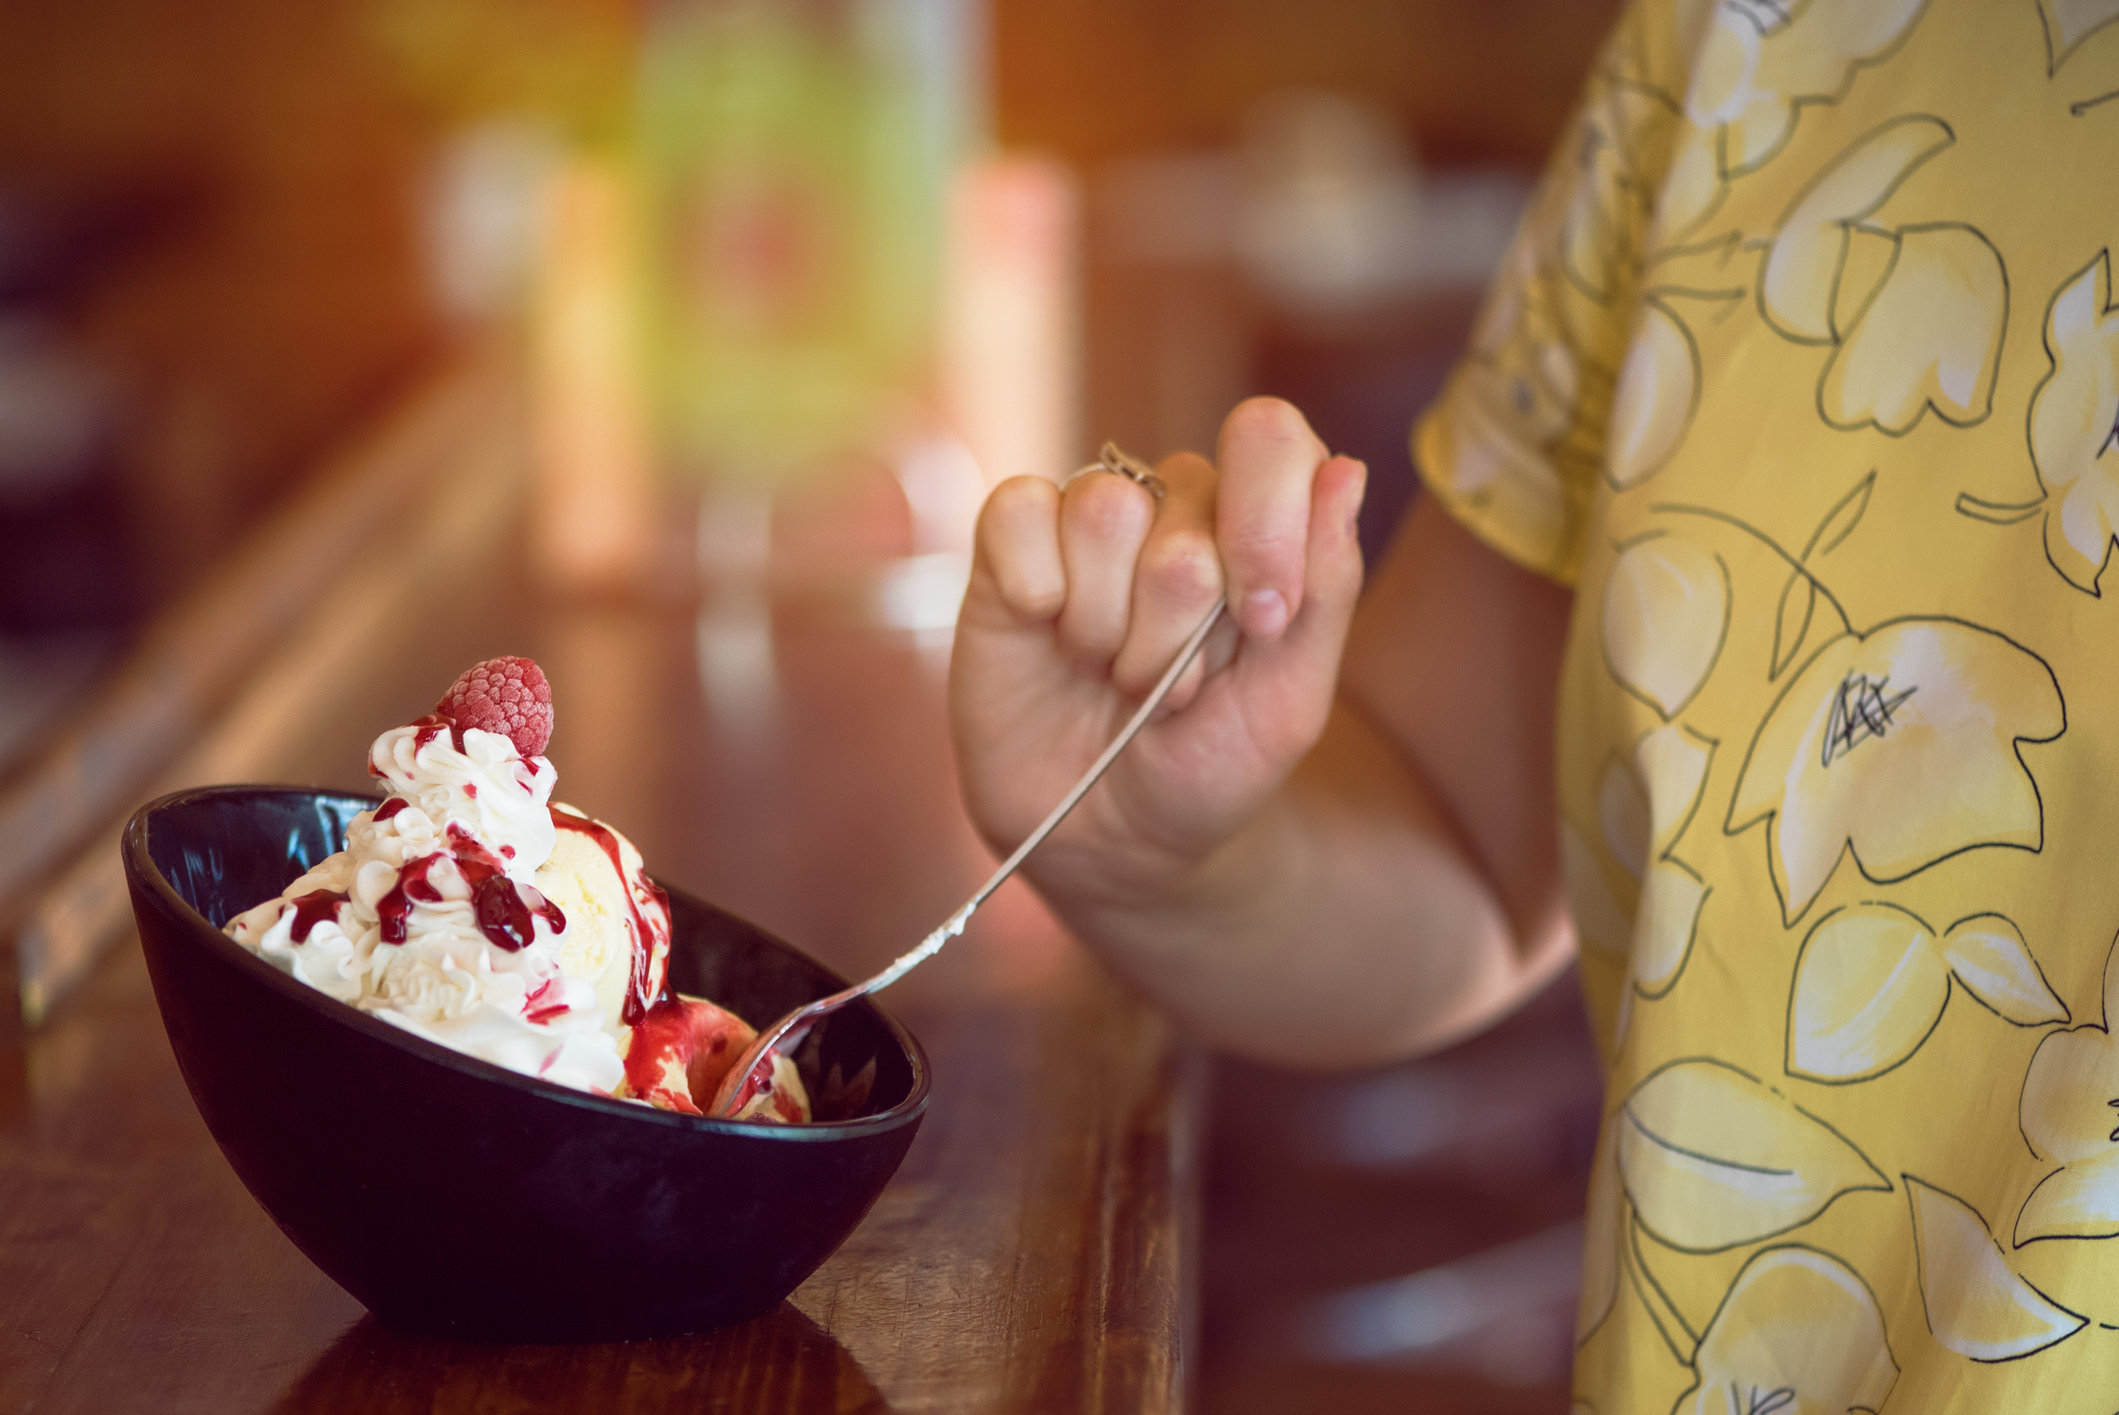 This ice cream is supposed to help you sleep better, so grab a spoon